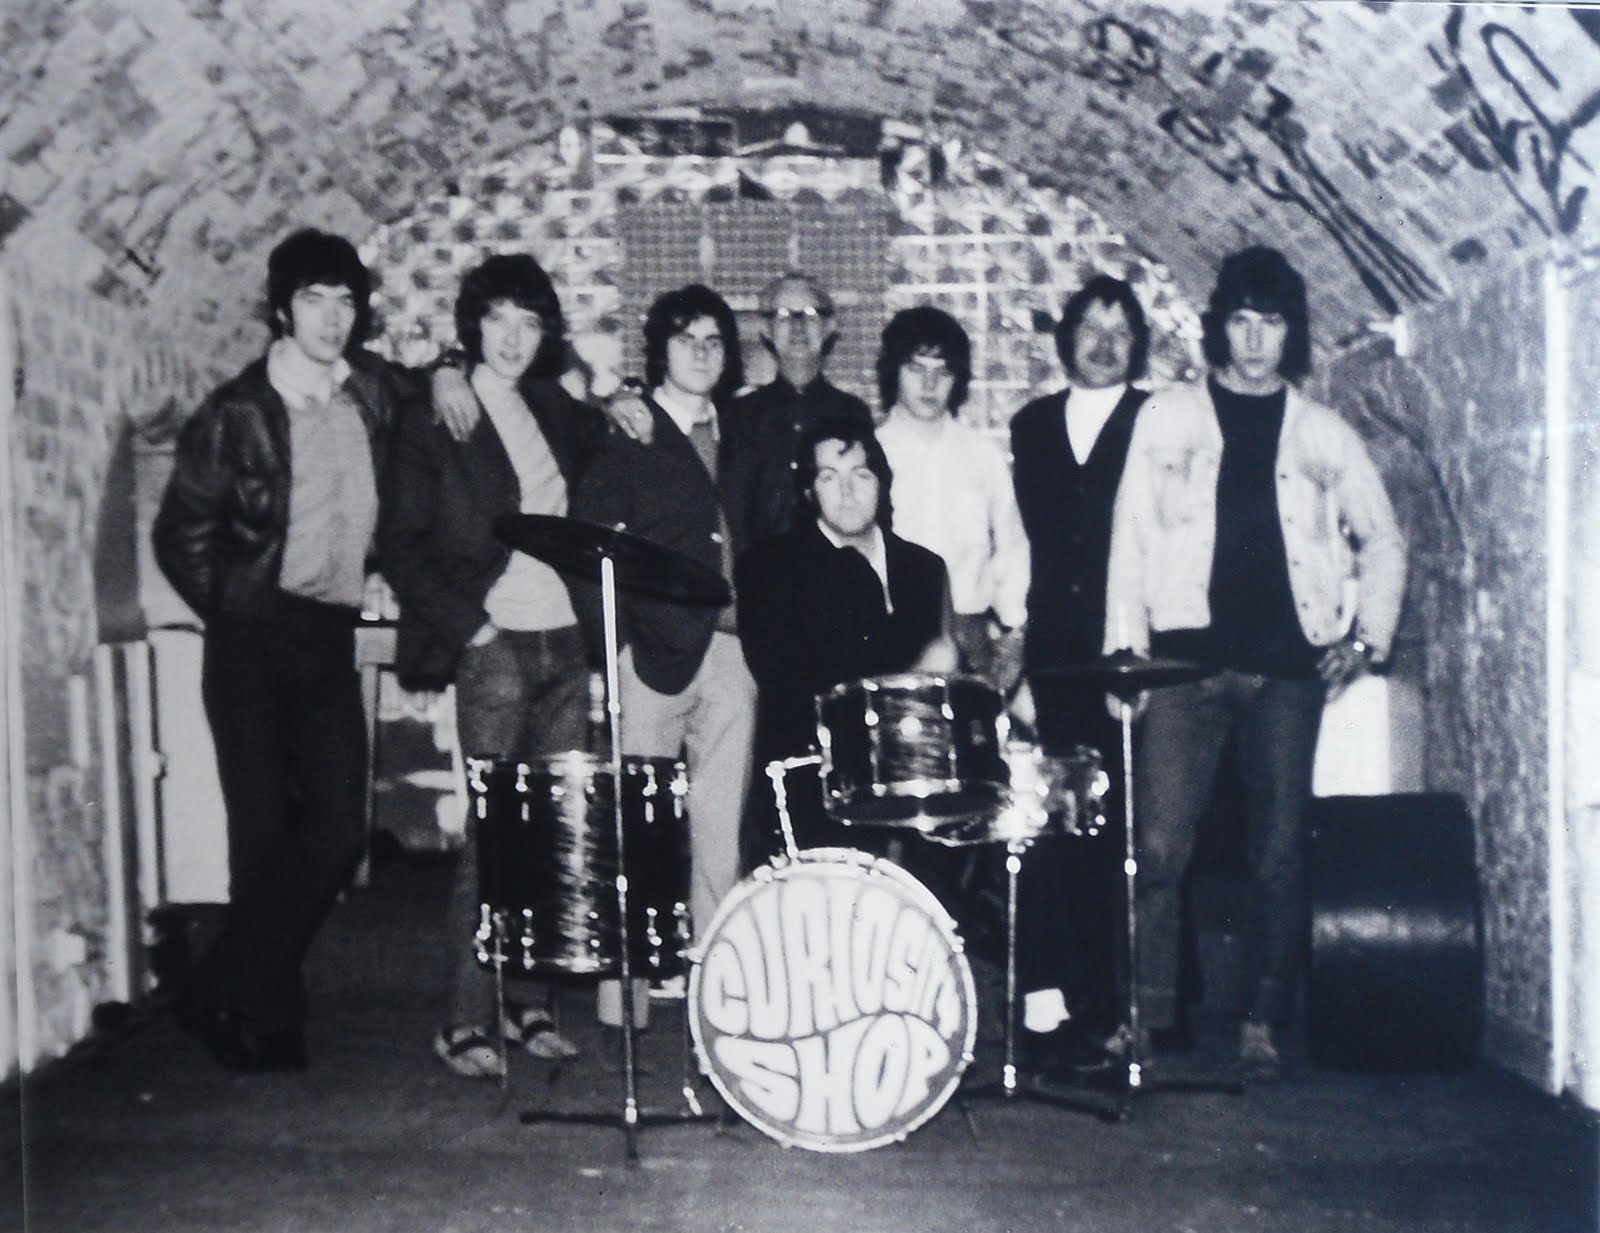 Paul McCartney Revisits The Original Cavern Club 1968